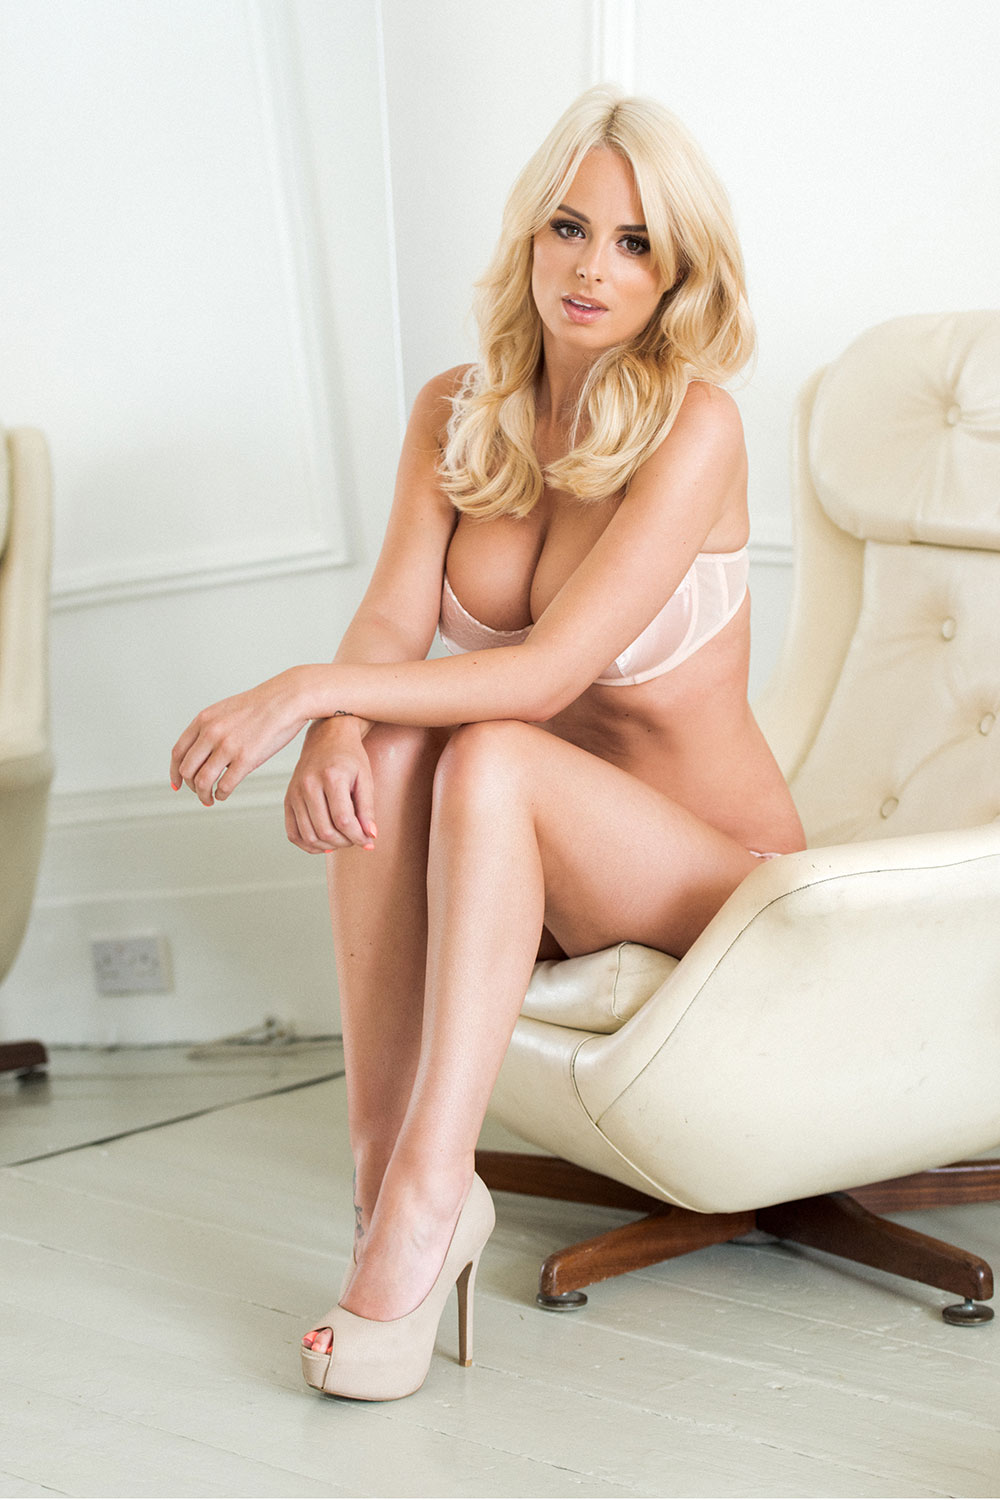 Model pussy pic